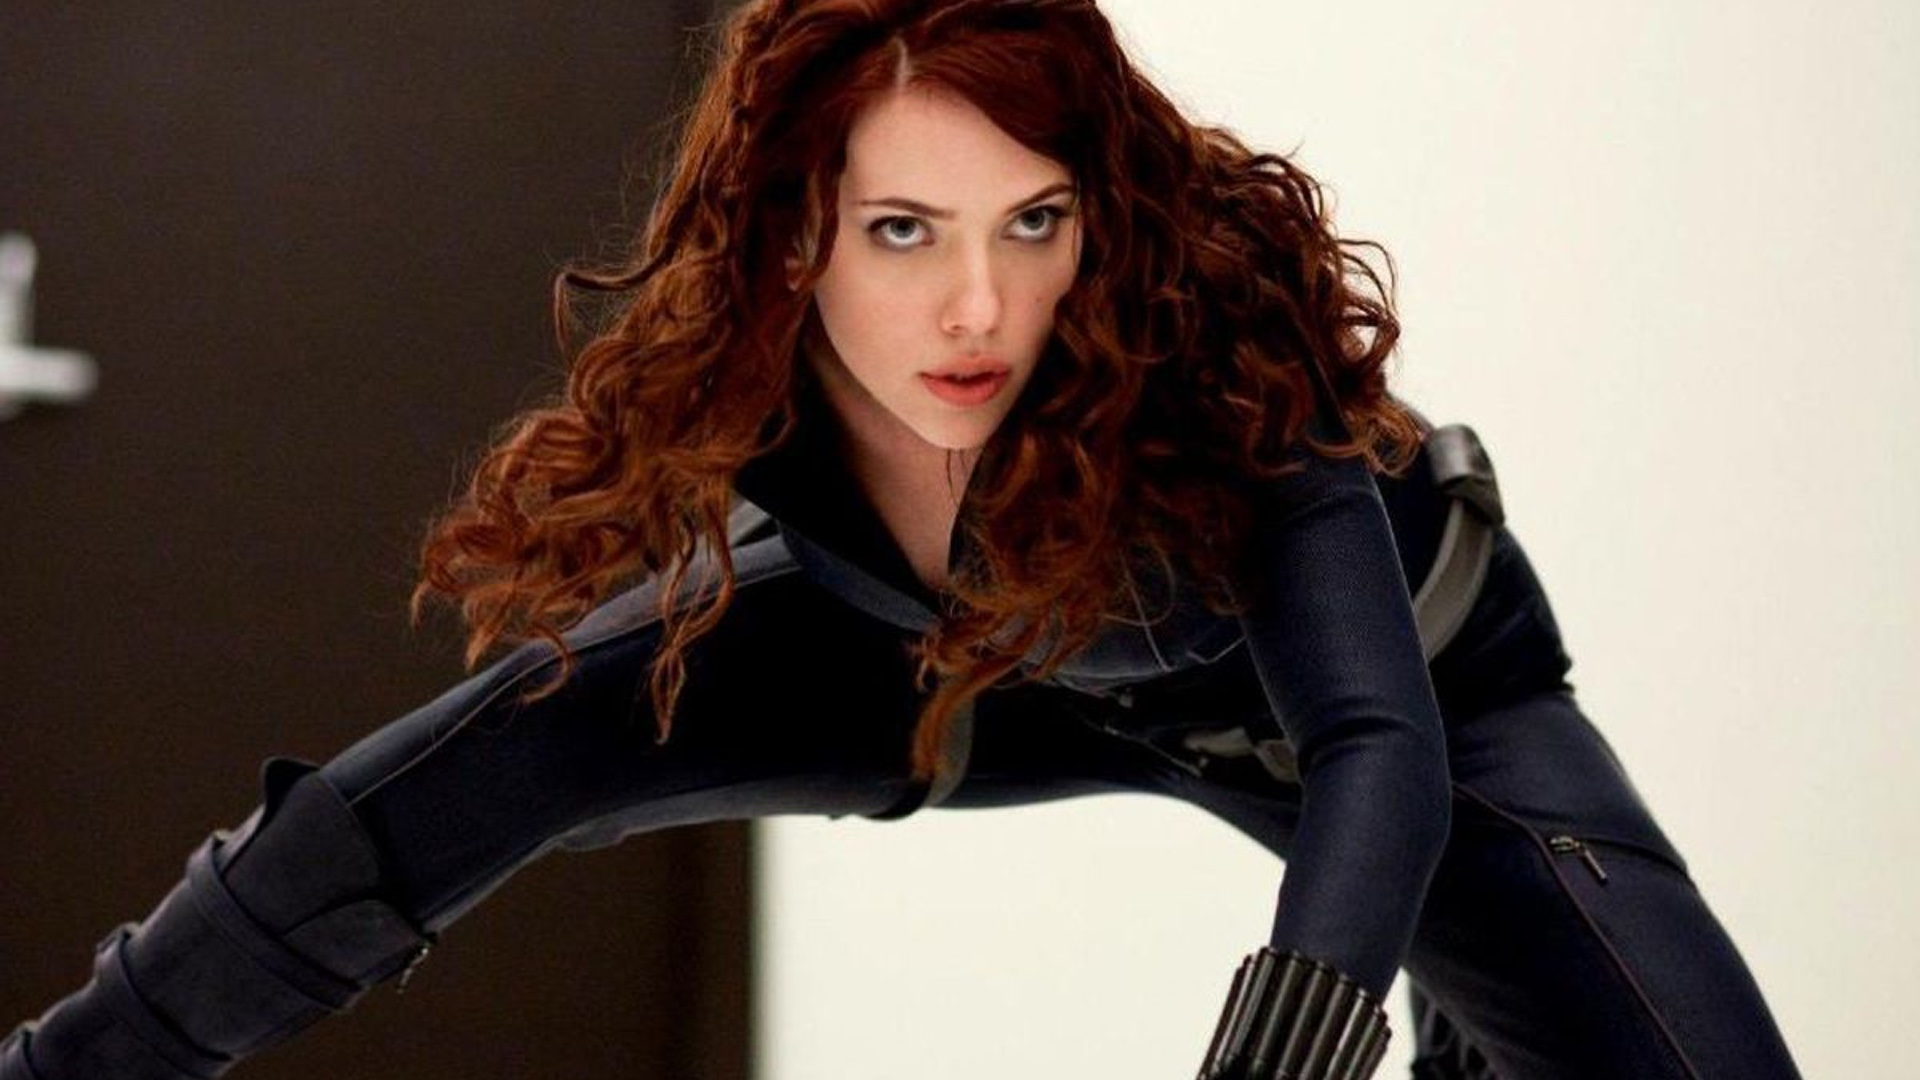 the-black-widow-solo-film-has-started-shooting-and-here-are-some-set-photos-and-video-of-scarlett-johansson-social.jpg